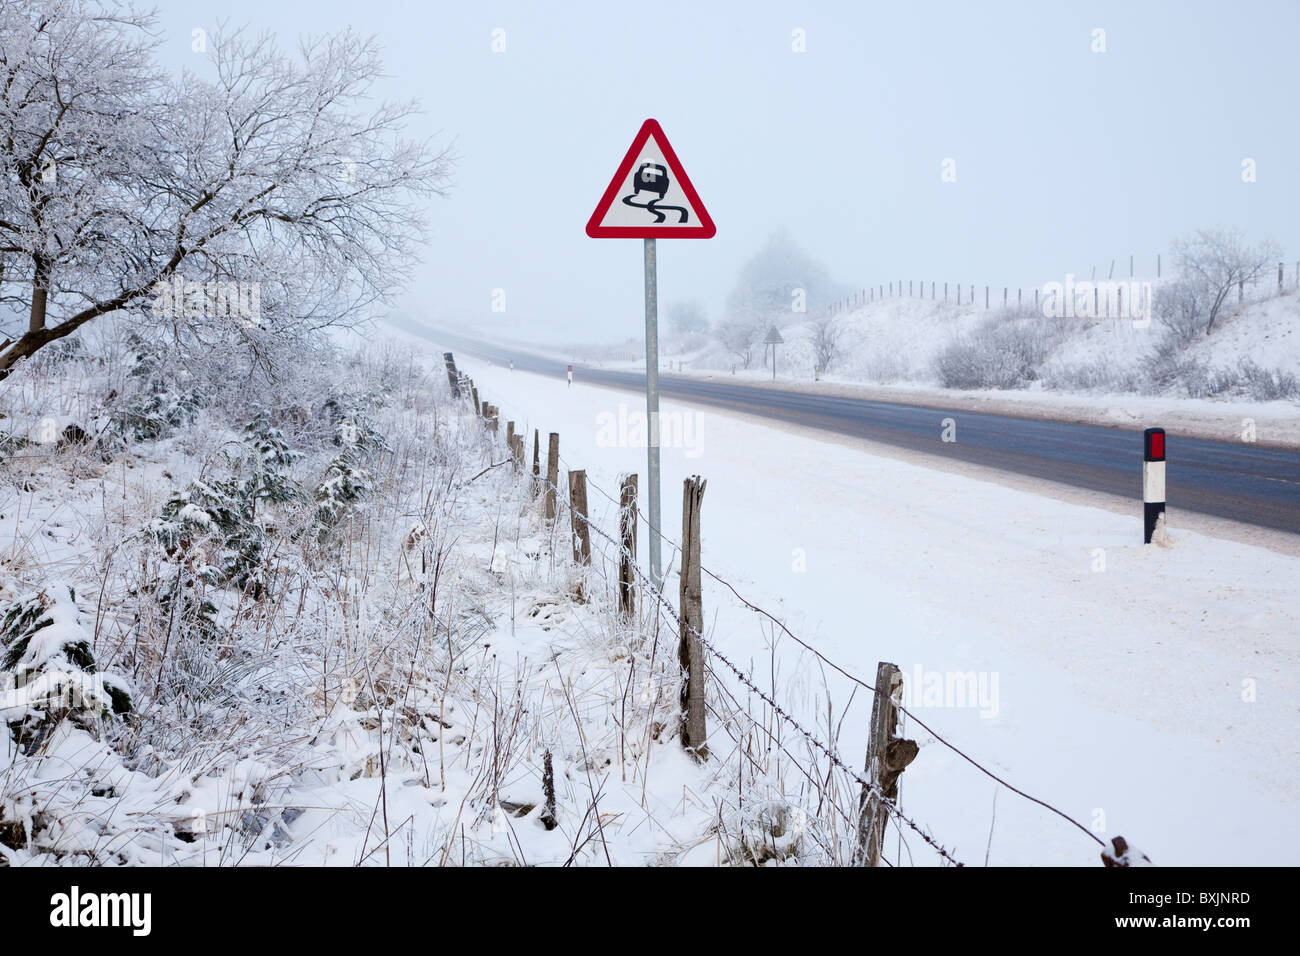 Winter road with freezing fog, snow and warning sign, near Floak on the road to Glasgow, Ayrshire, Scotland - Stock Image